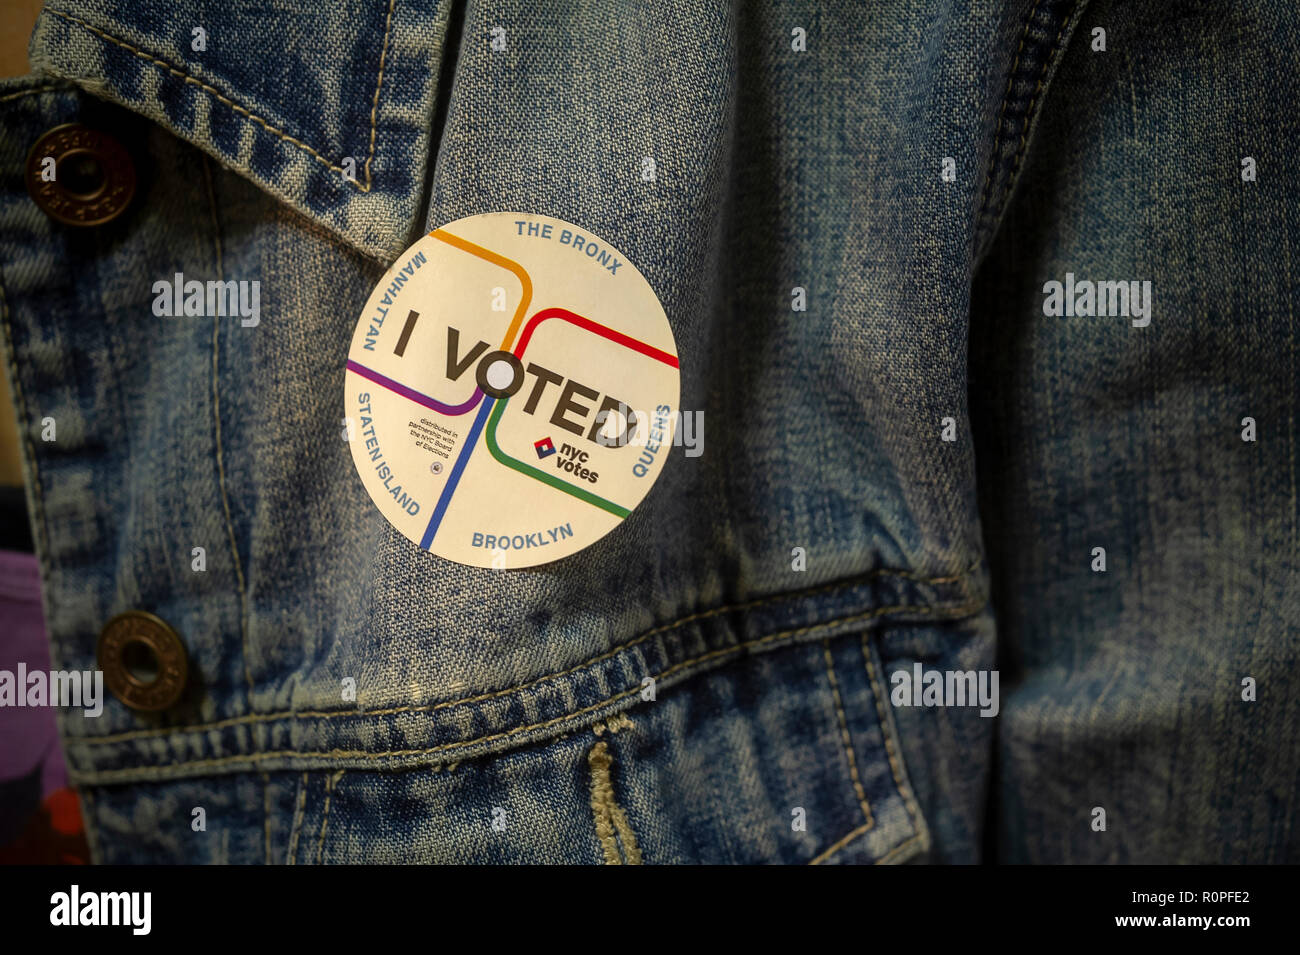 New York, USA. 6th November, 2018. A voter wears her 'I Voted' sticker on Election Day in New York on Tuesday, November 6, 2018. Credit: Richard Levine/Alamy Live News - Stock Image